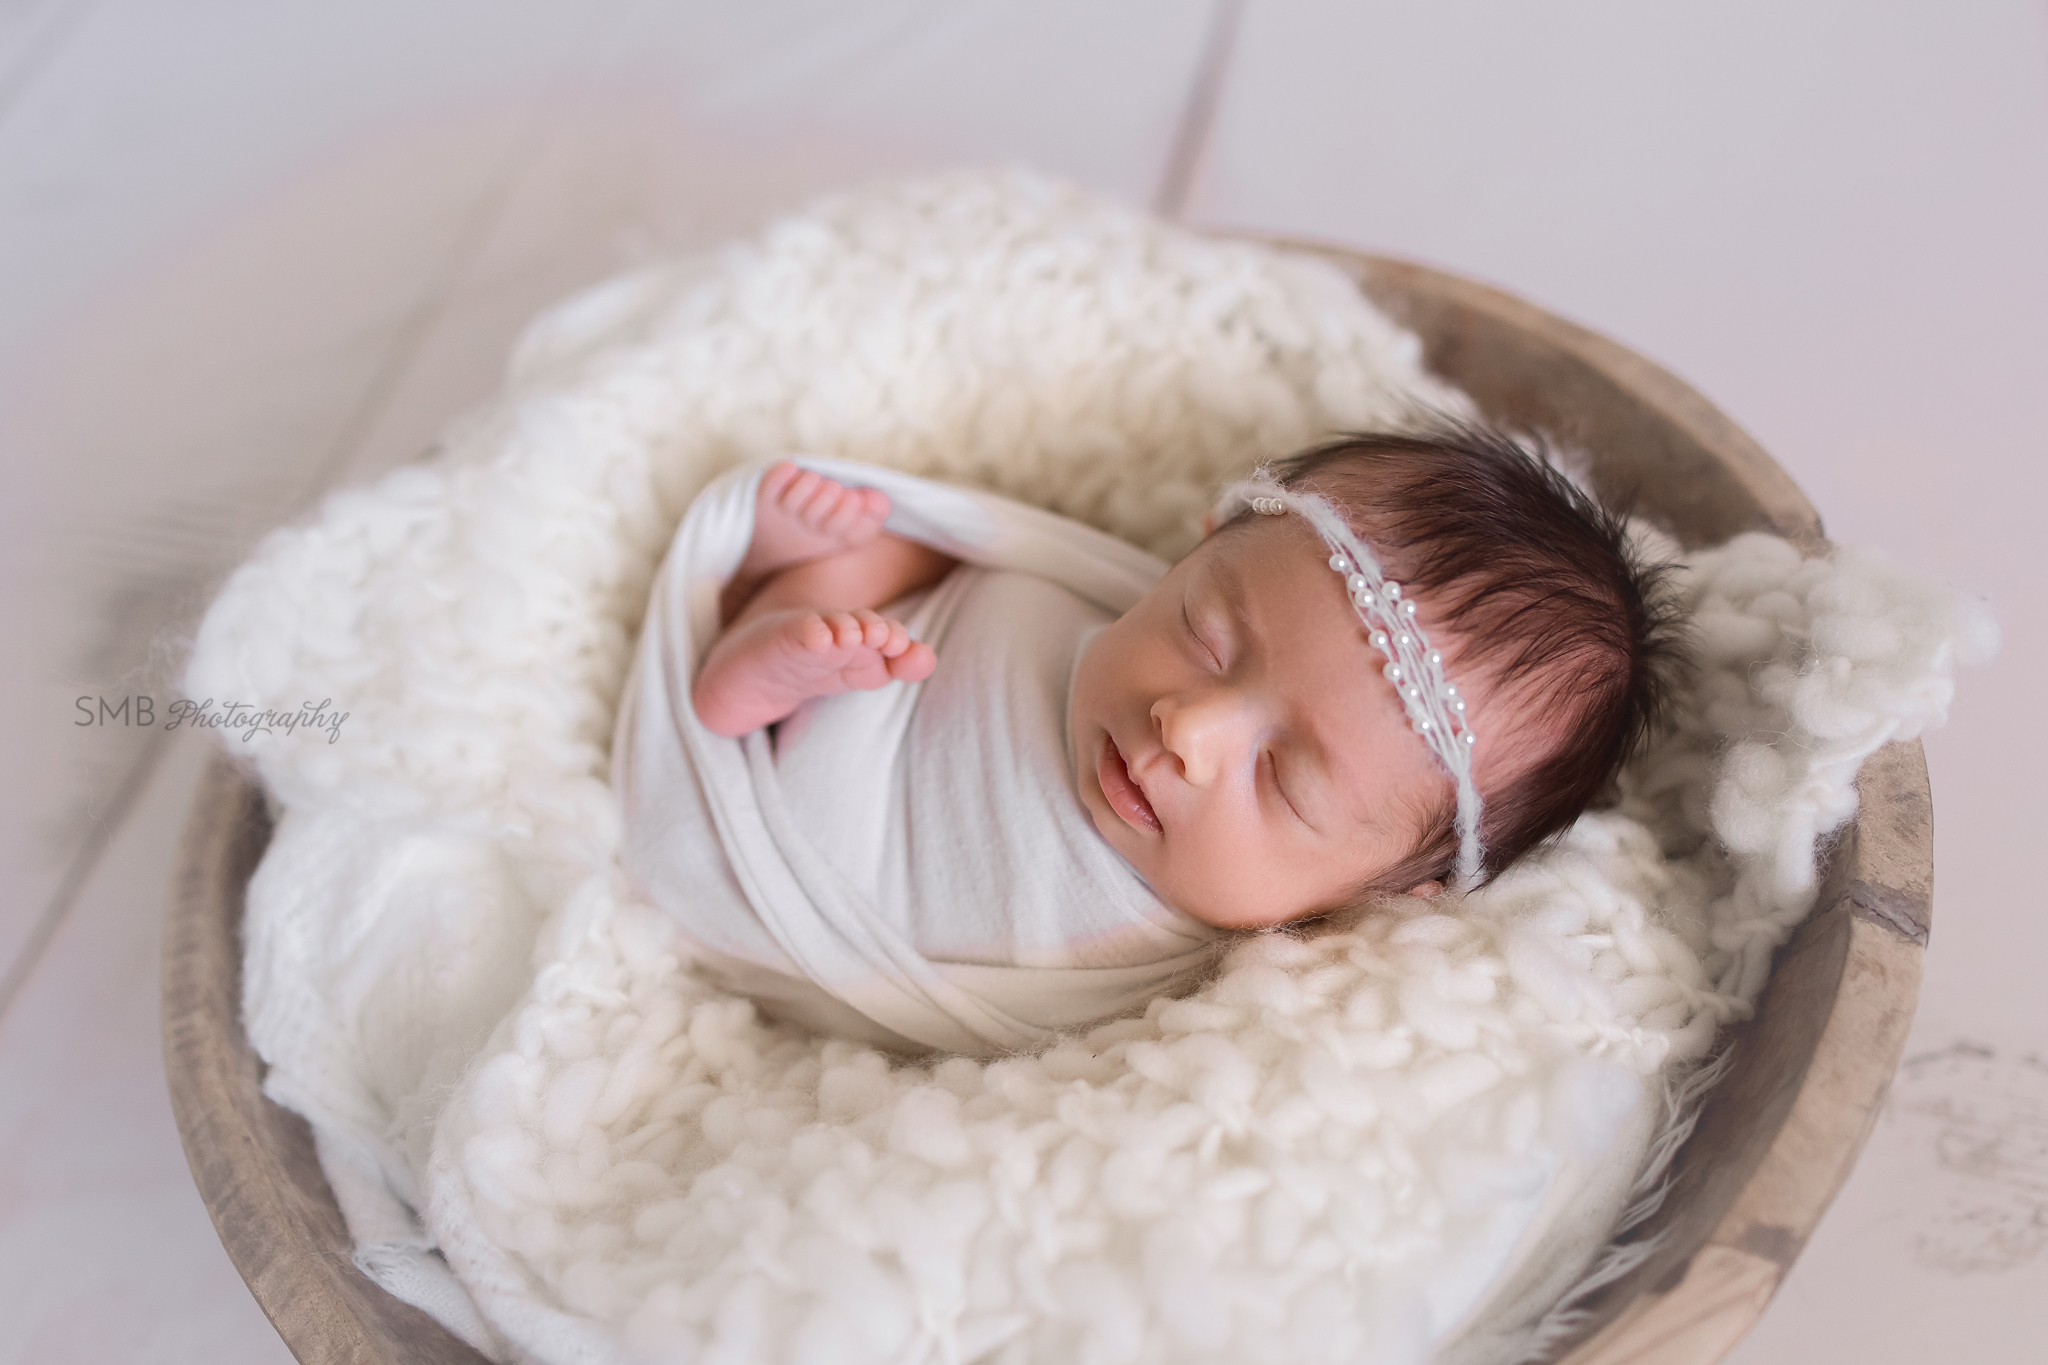 Newborn girl in wooden bowl